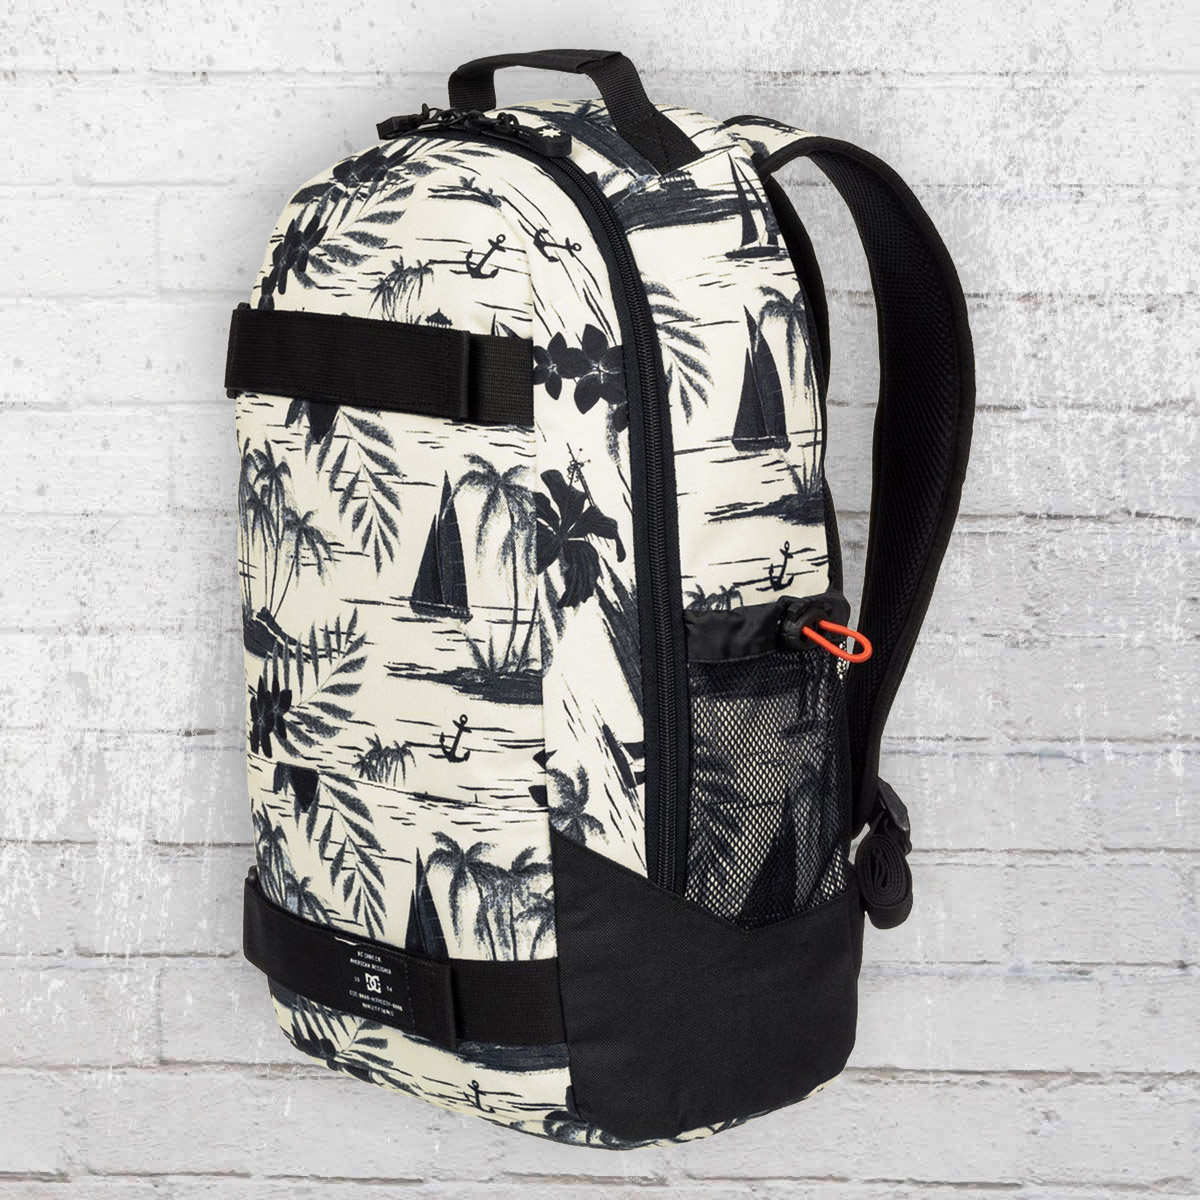 ebc68072670 Order now   DC Shoes Grind Backpack with board catcher creme white black